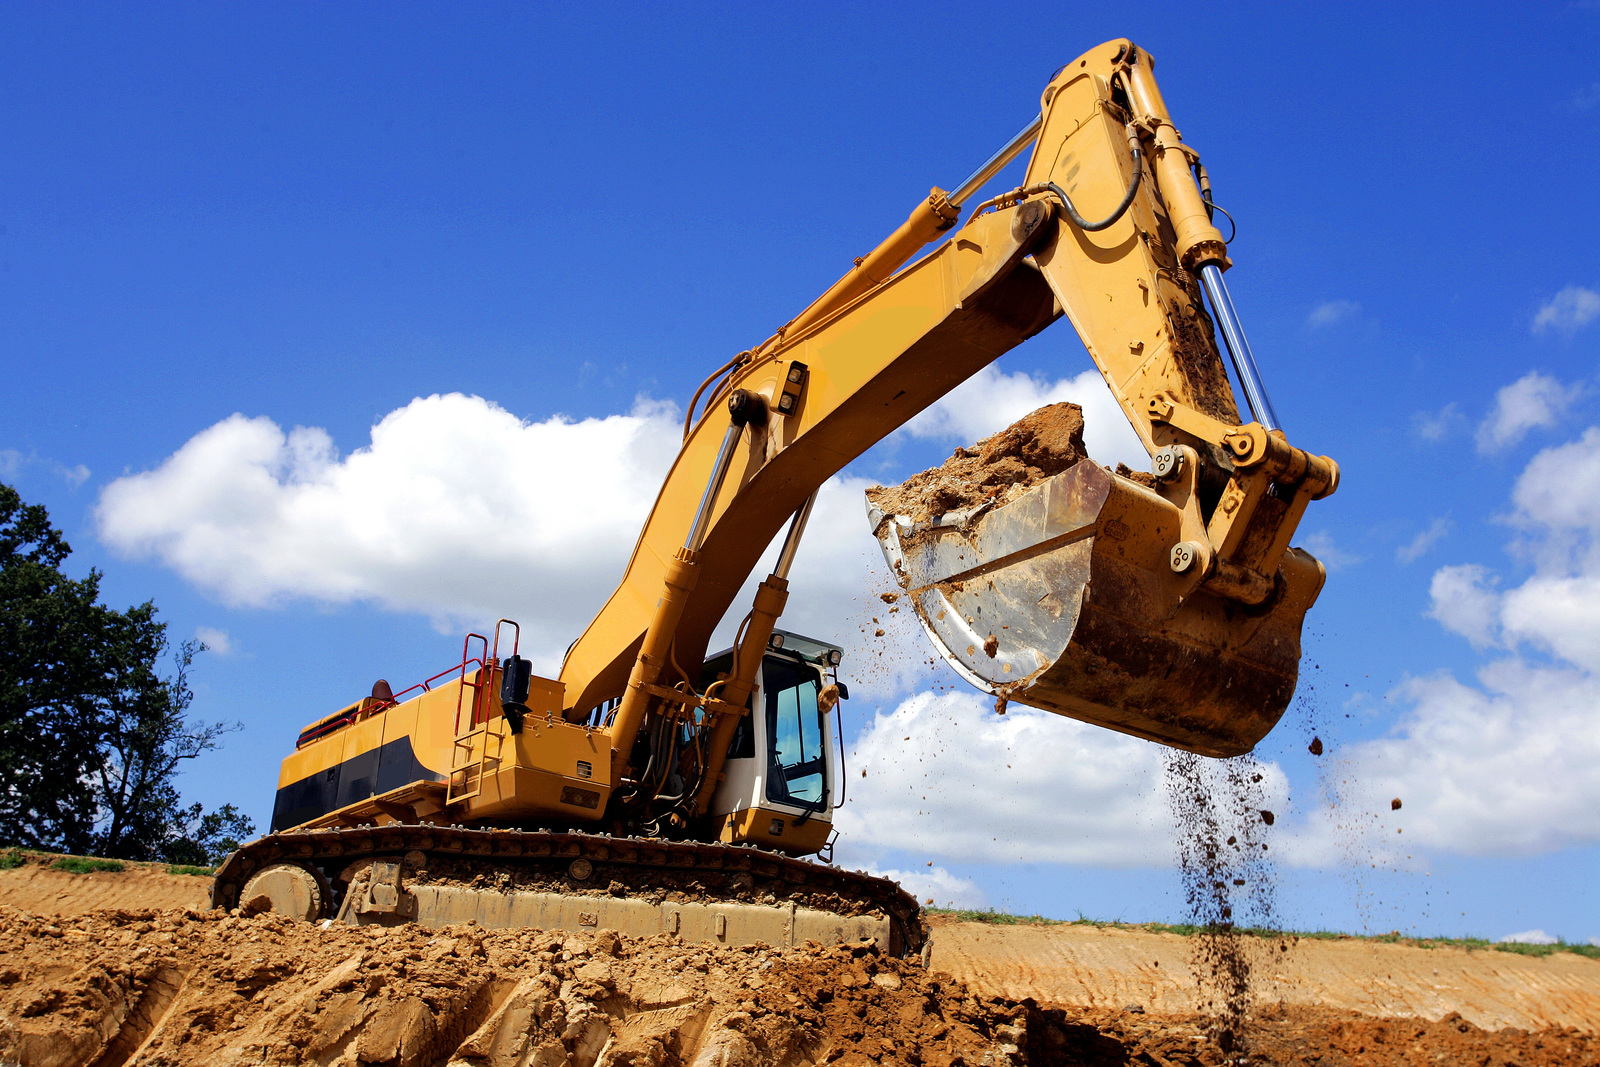 Digging Deeper: The Non-Construction Uses of Diggers